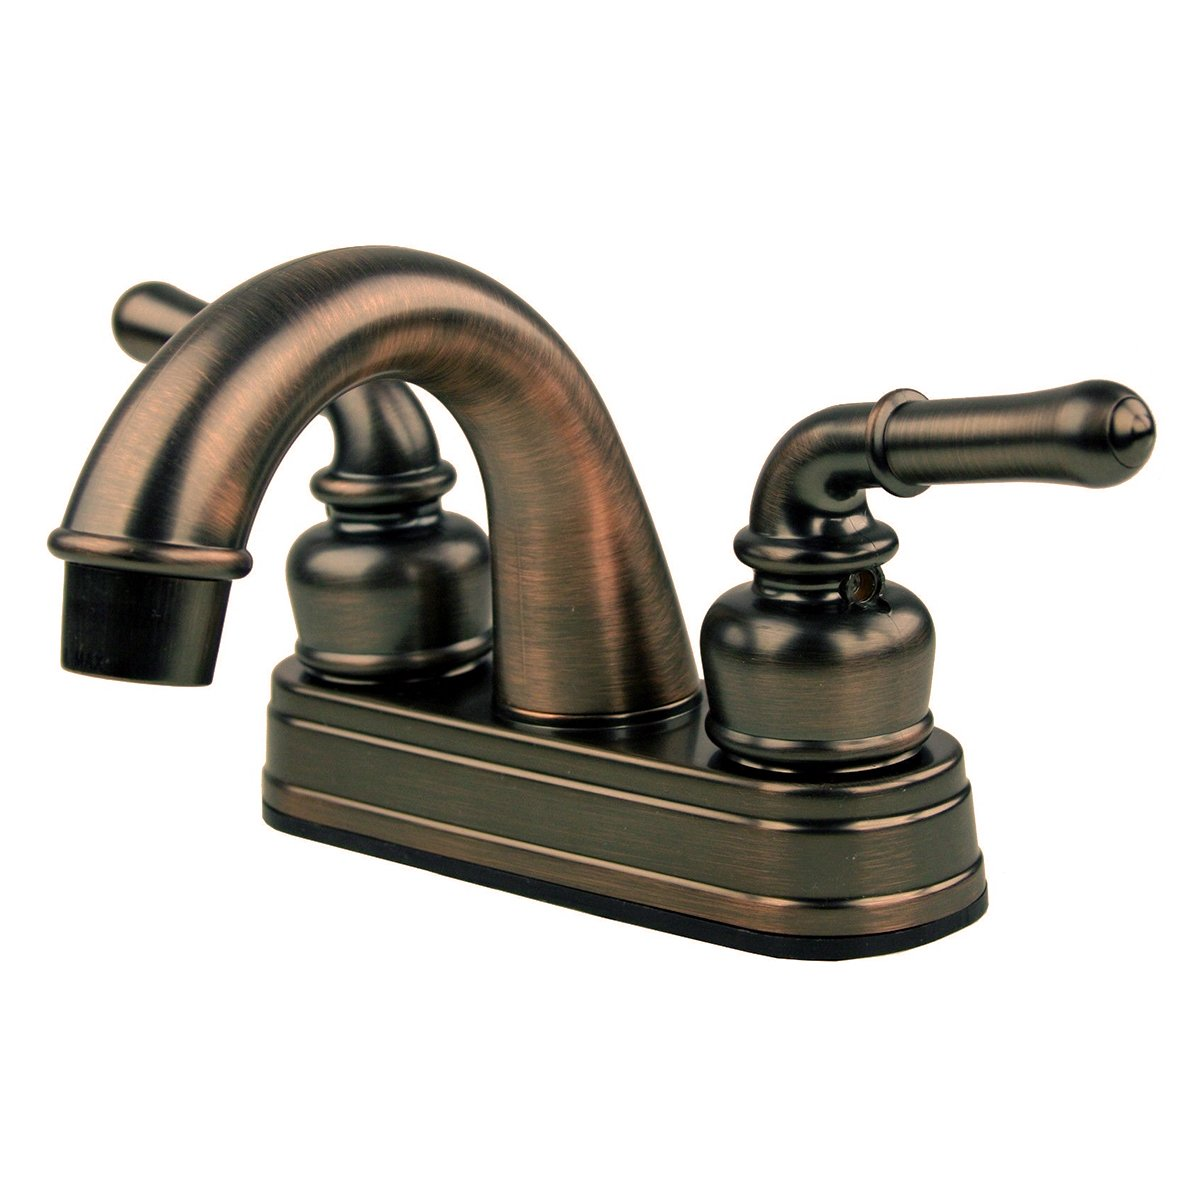 Amazon.com: RV / Mobile Home Bathroom Sink Faucet, Oil Rubbed Bronze:  Automotive